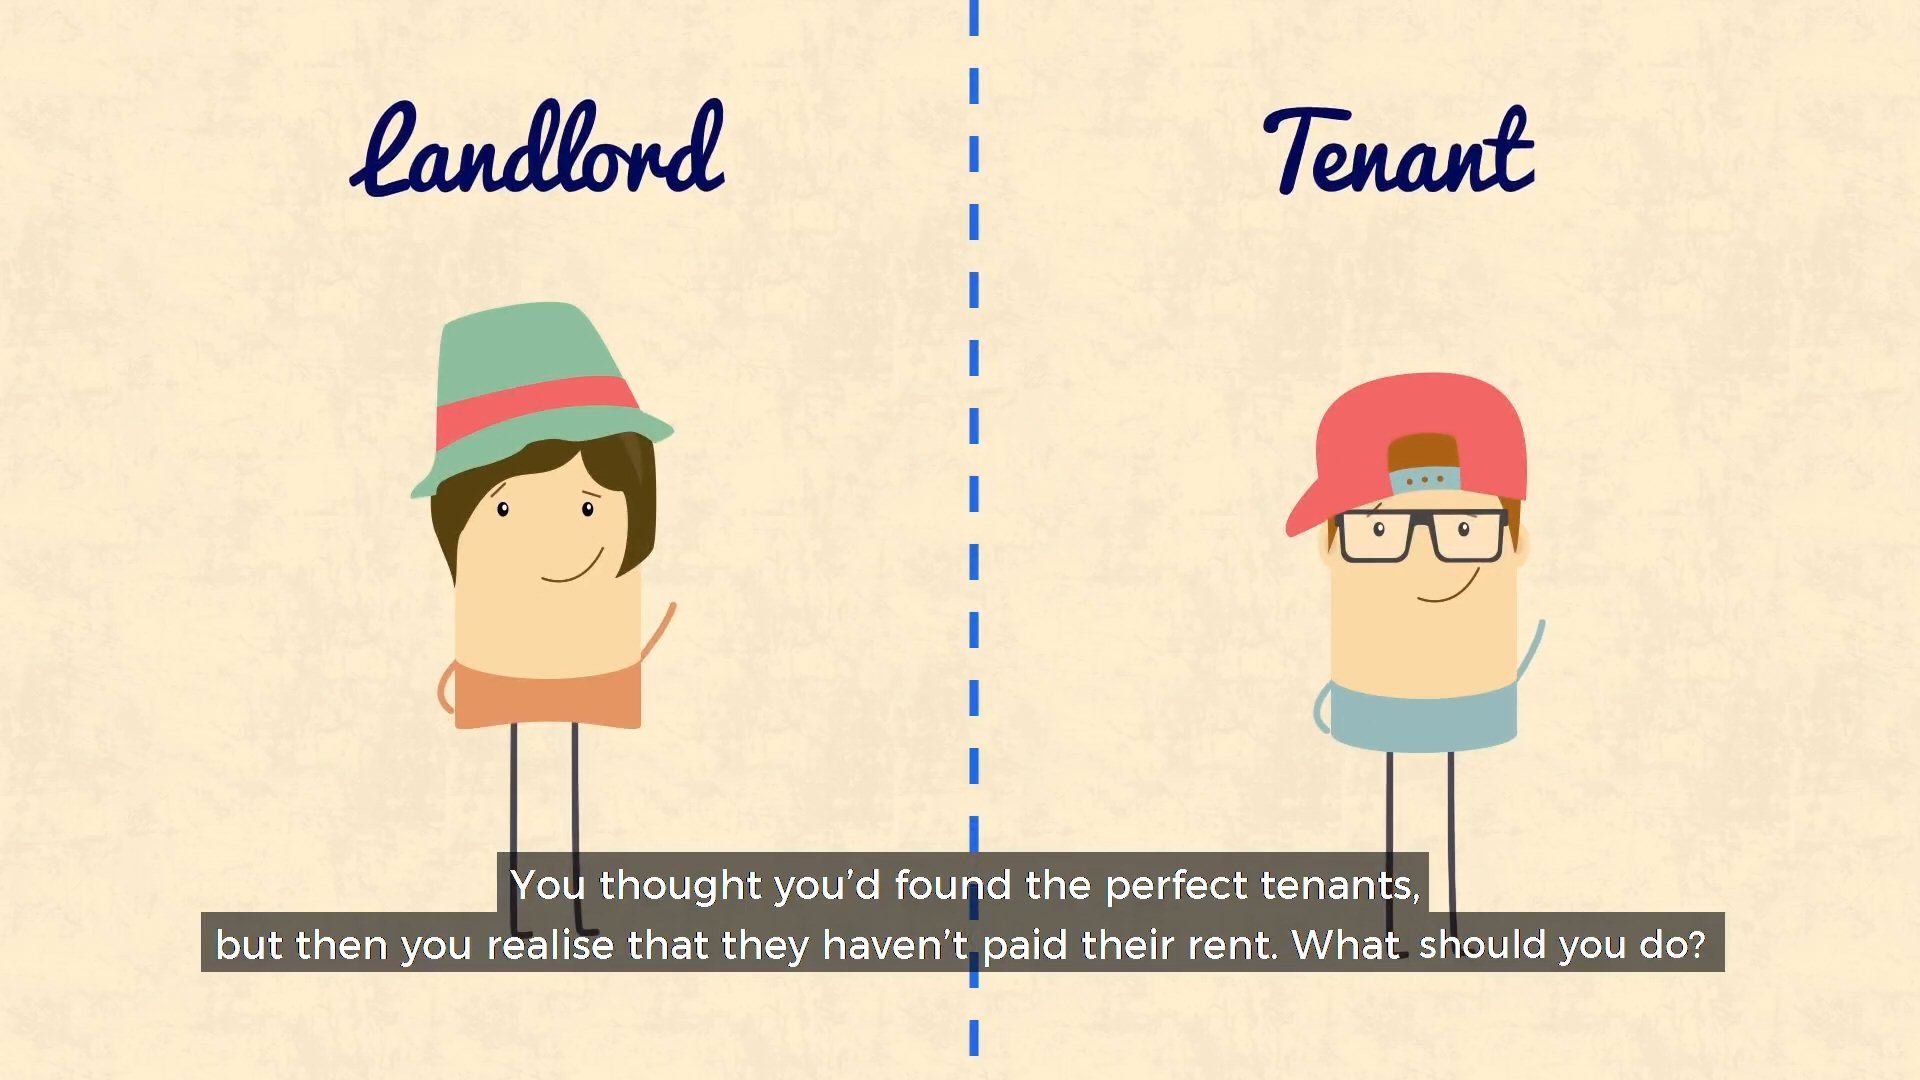 VIDEO: What should I do when a tenant won't pay rent?